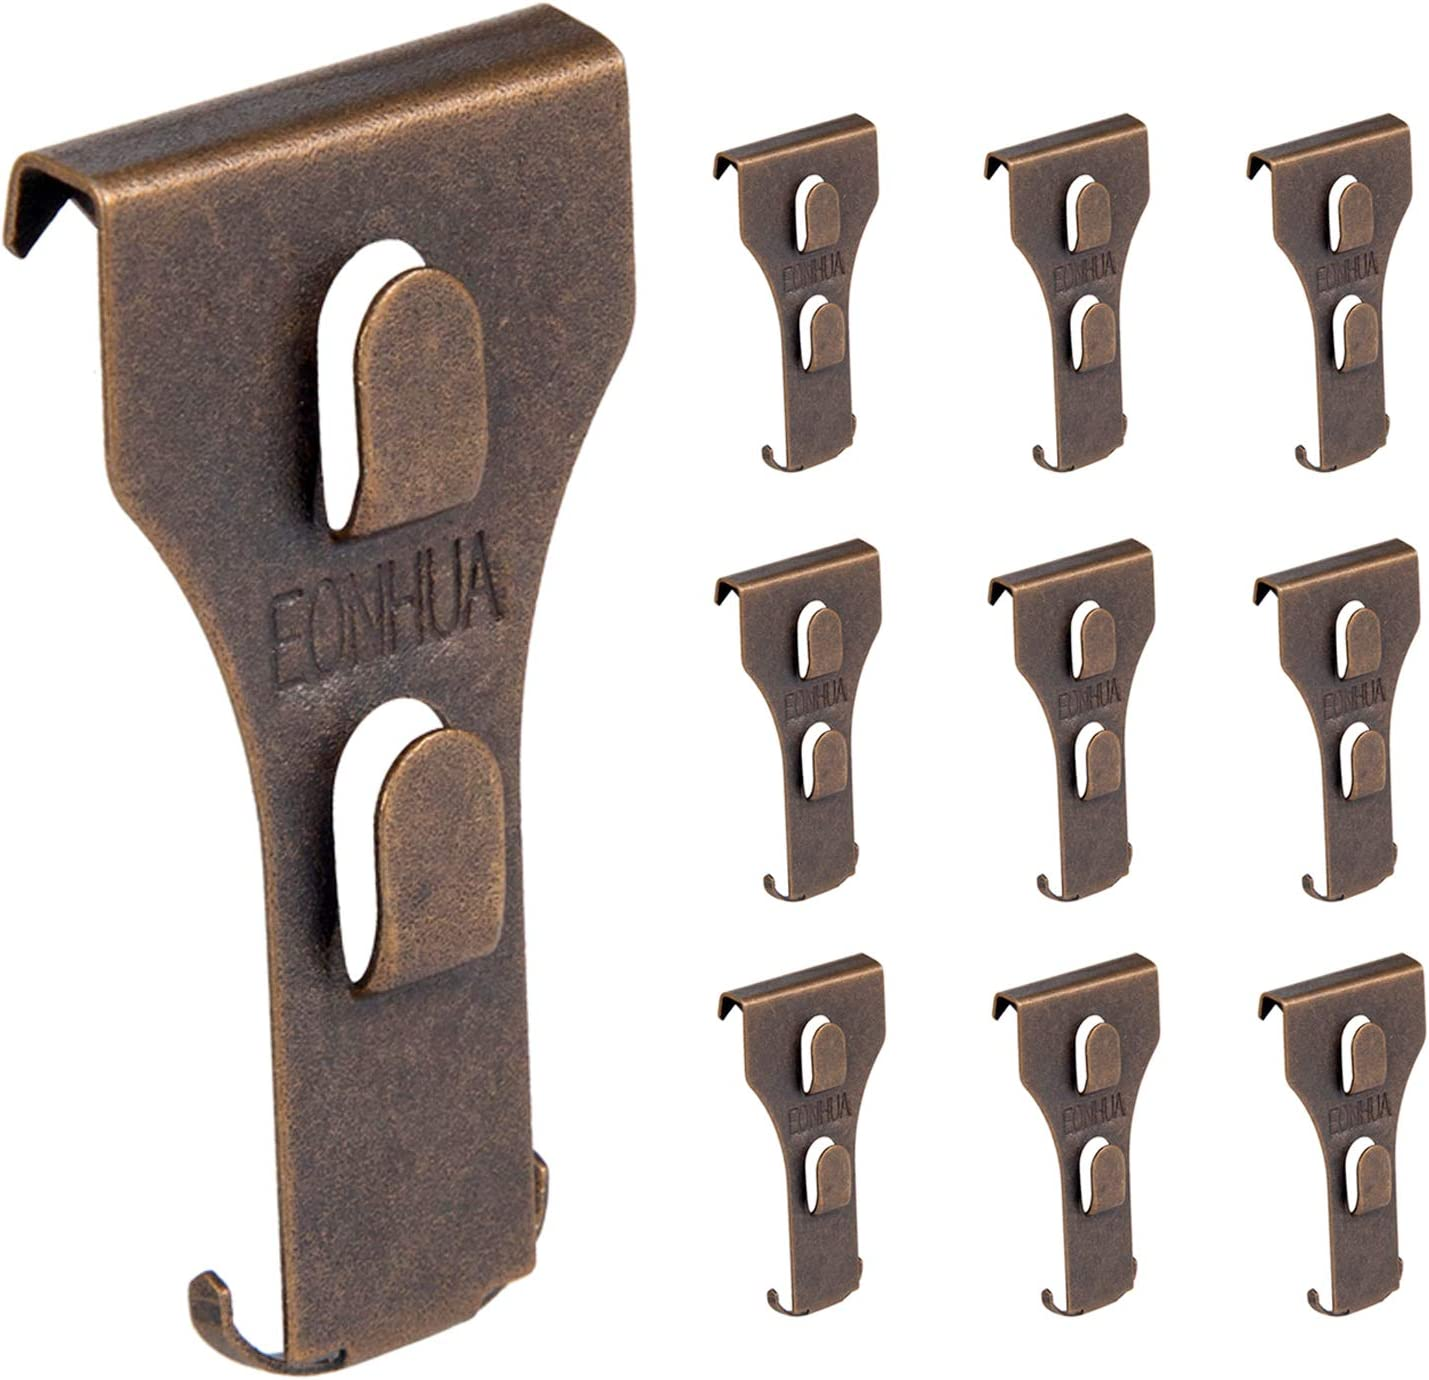 EONHUA Brick Hook Clips for Hanging- Brick Wall Clips for Hanging,Steel Hooks Brick Lights Wreaths Pictures Hanger Fits Brick 2 1/4 to 2 3/8 inch in Height (10PCS (Fits Brick 2 1/4 to 2 3/8))